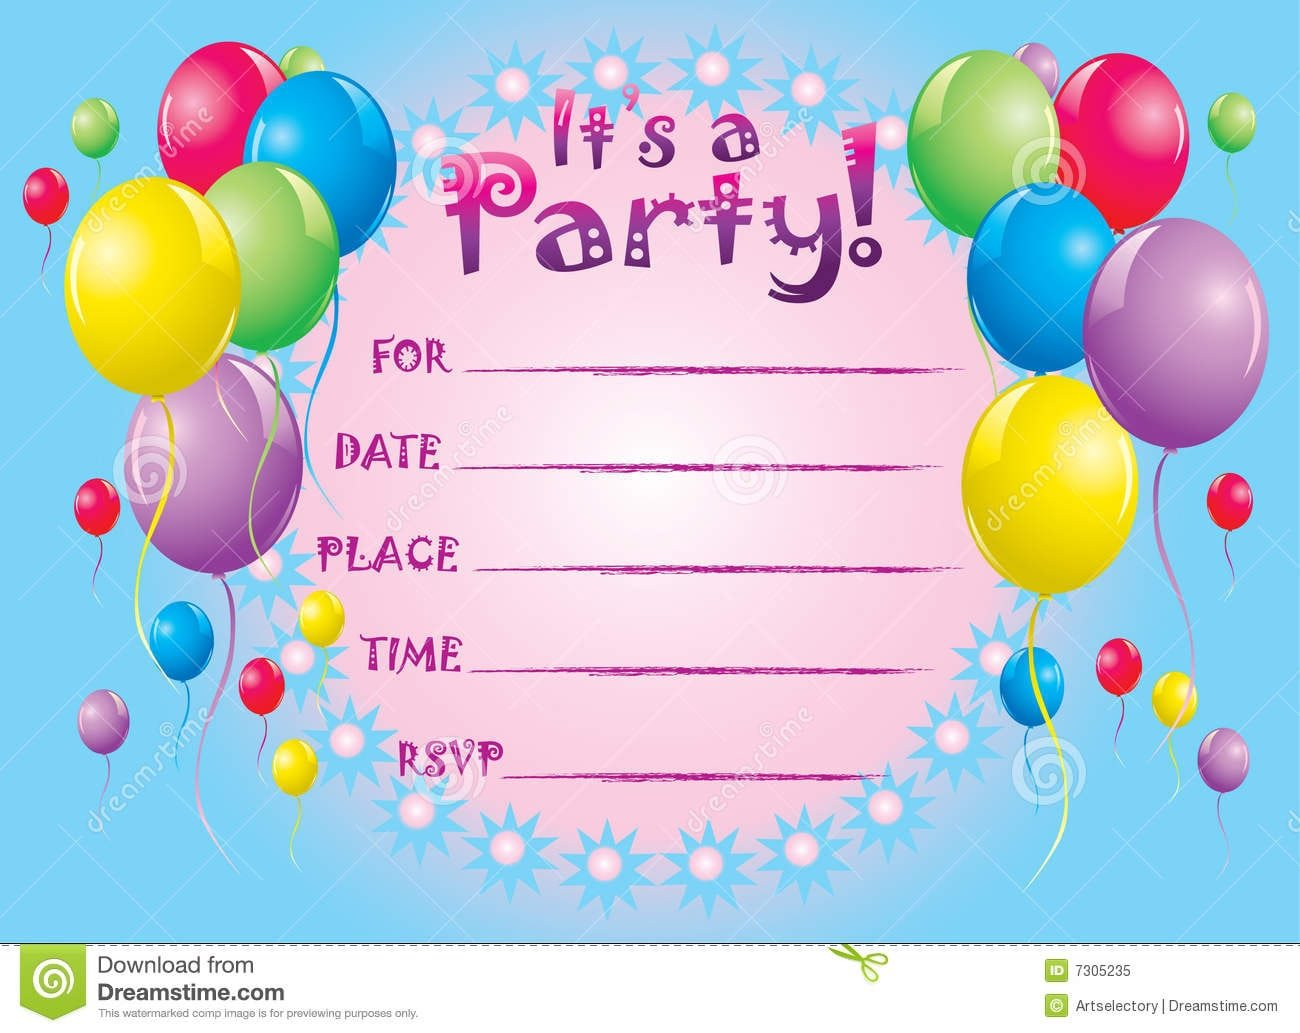 An Image Of Invitation Card For Birthday Party